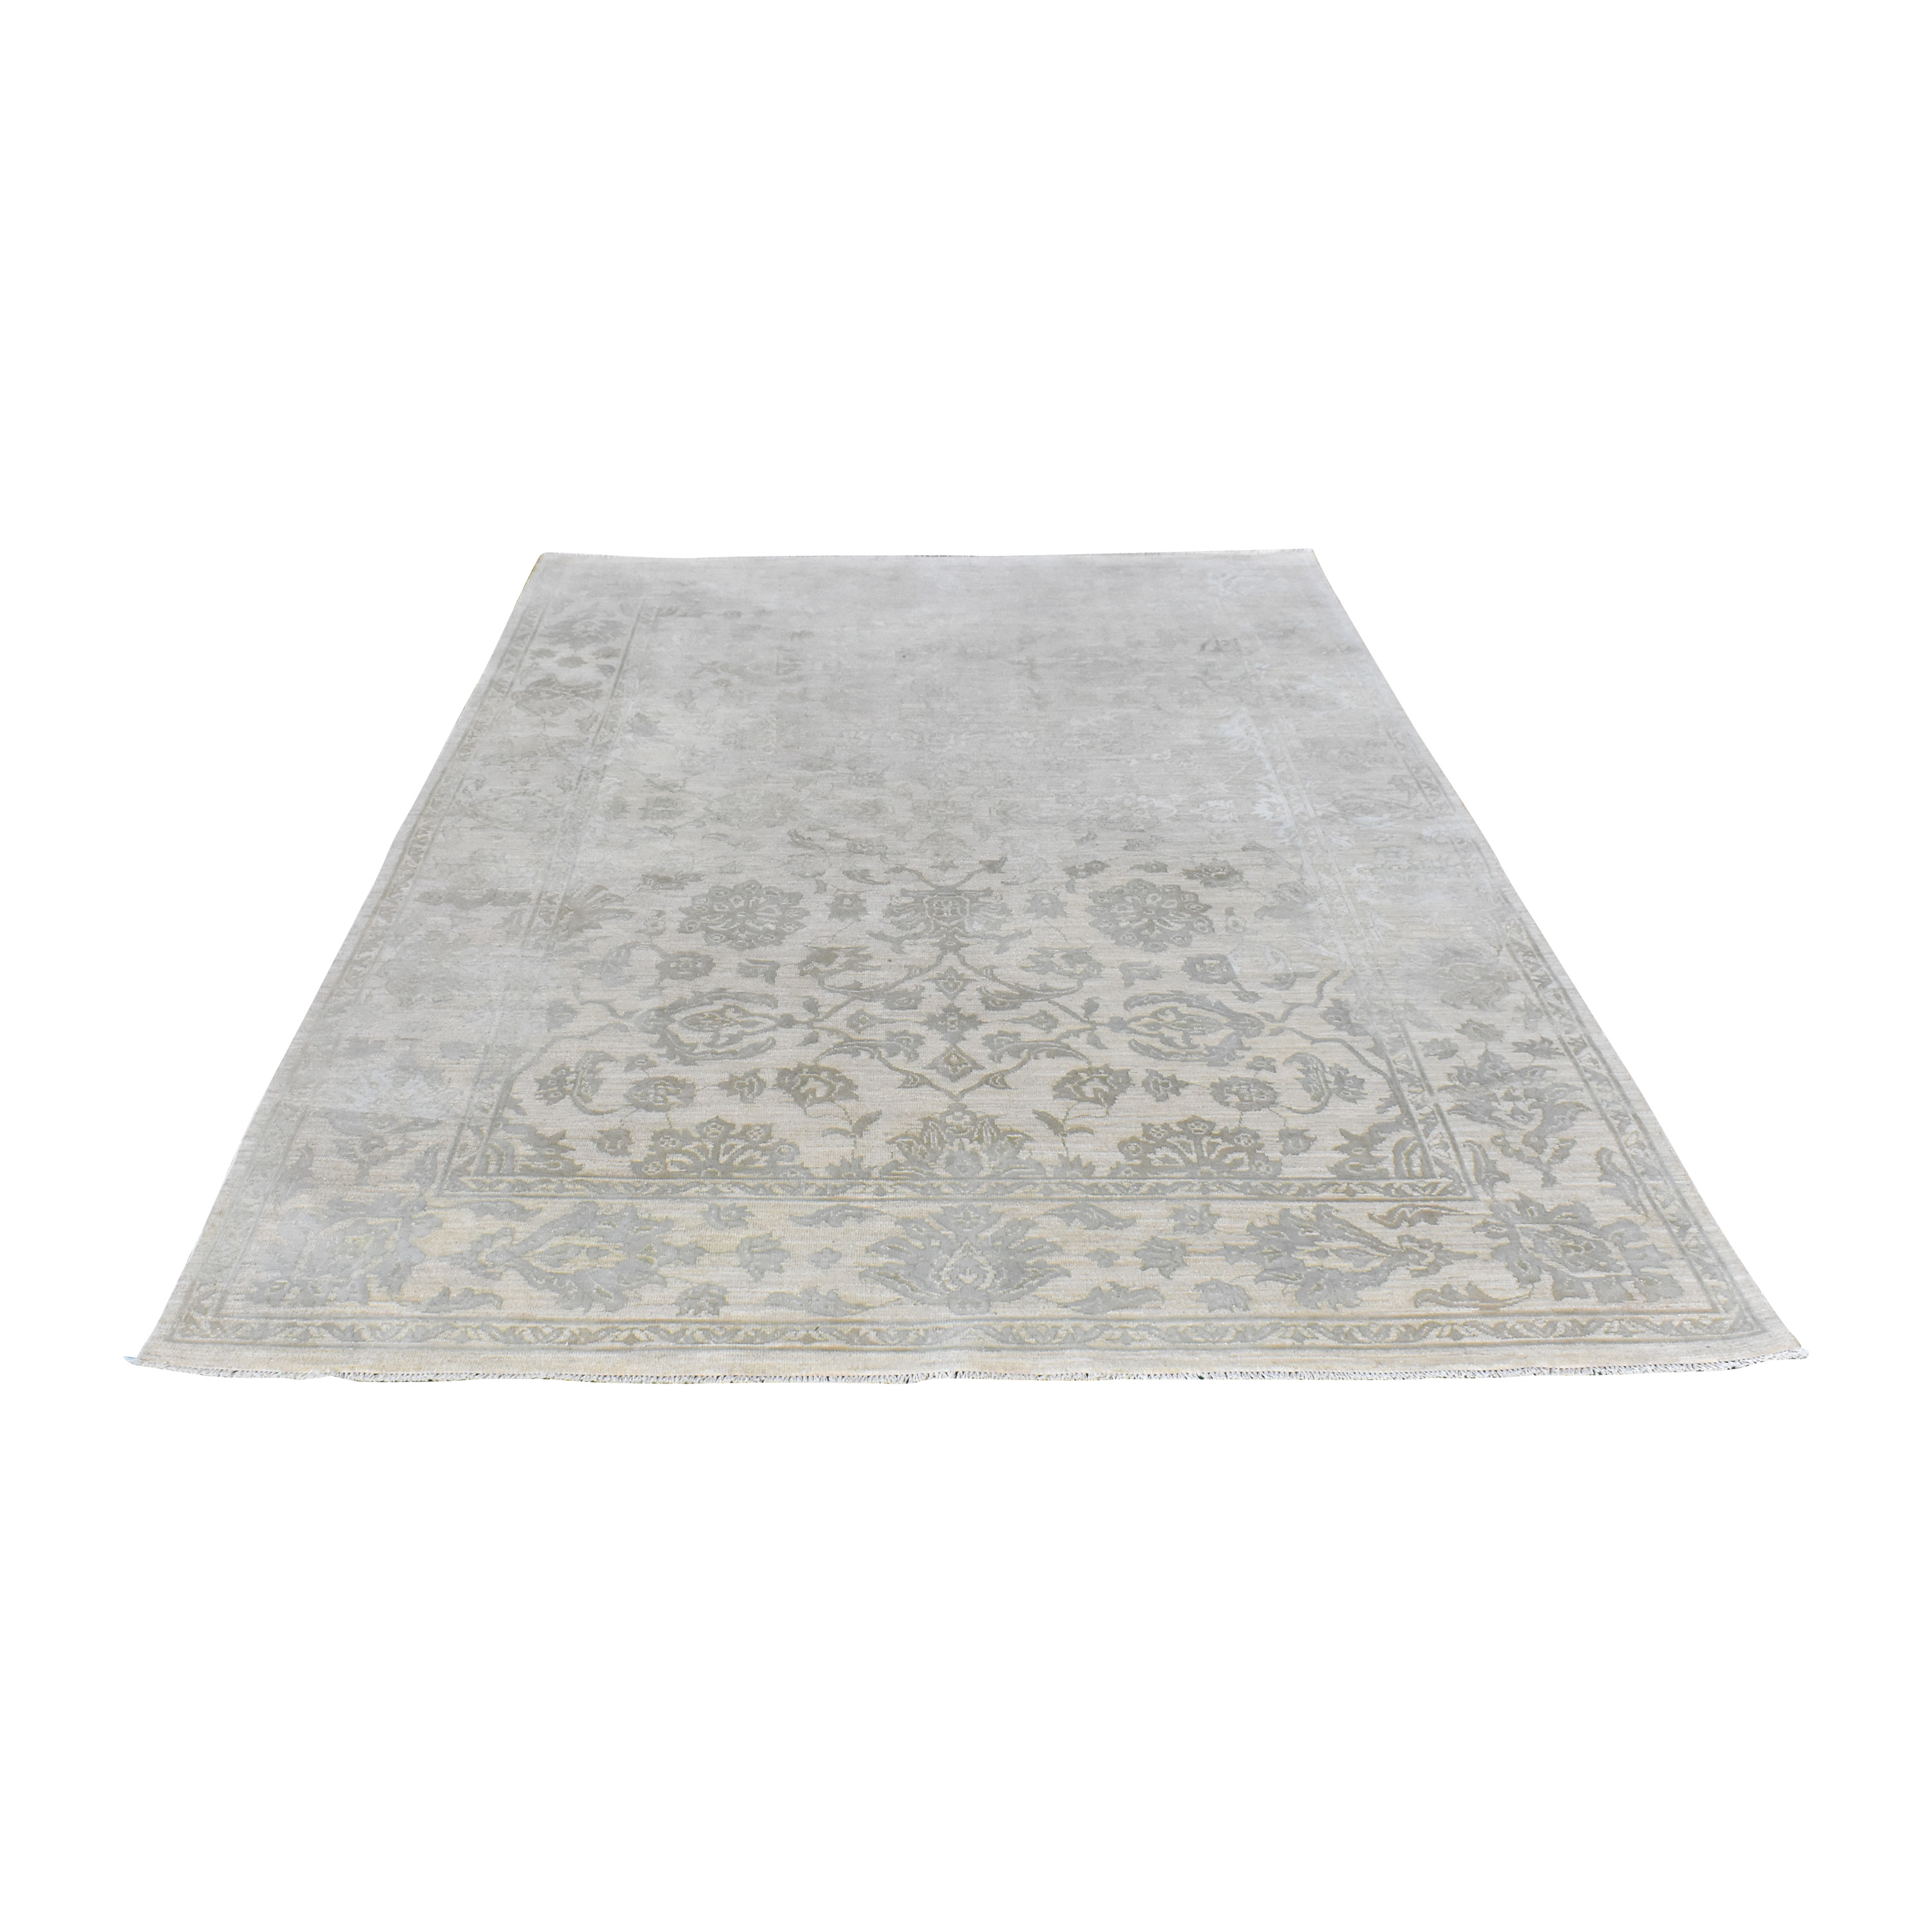 ABC Carpet & Home ABC Carpet & Home Area Rug nyc